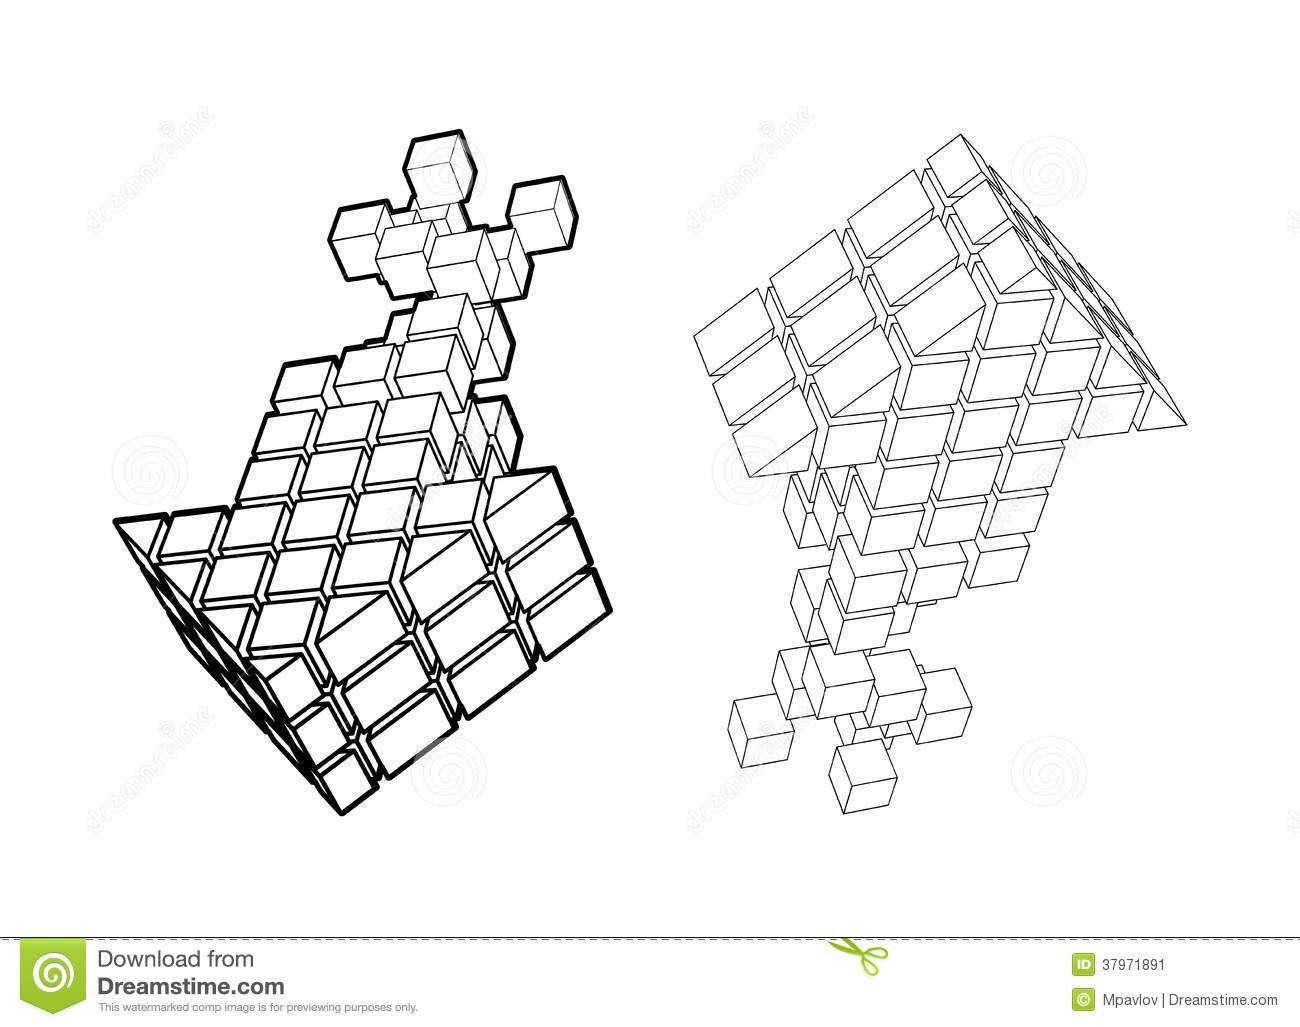 Arrow icon made of cubes stock vector. Illustration of